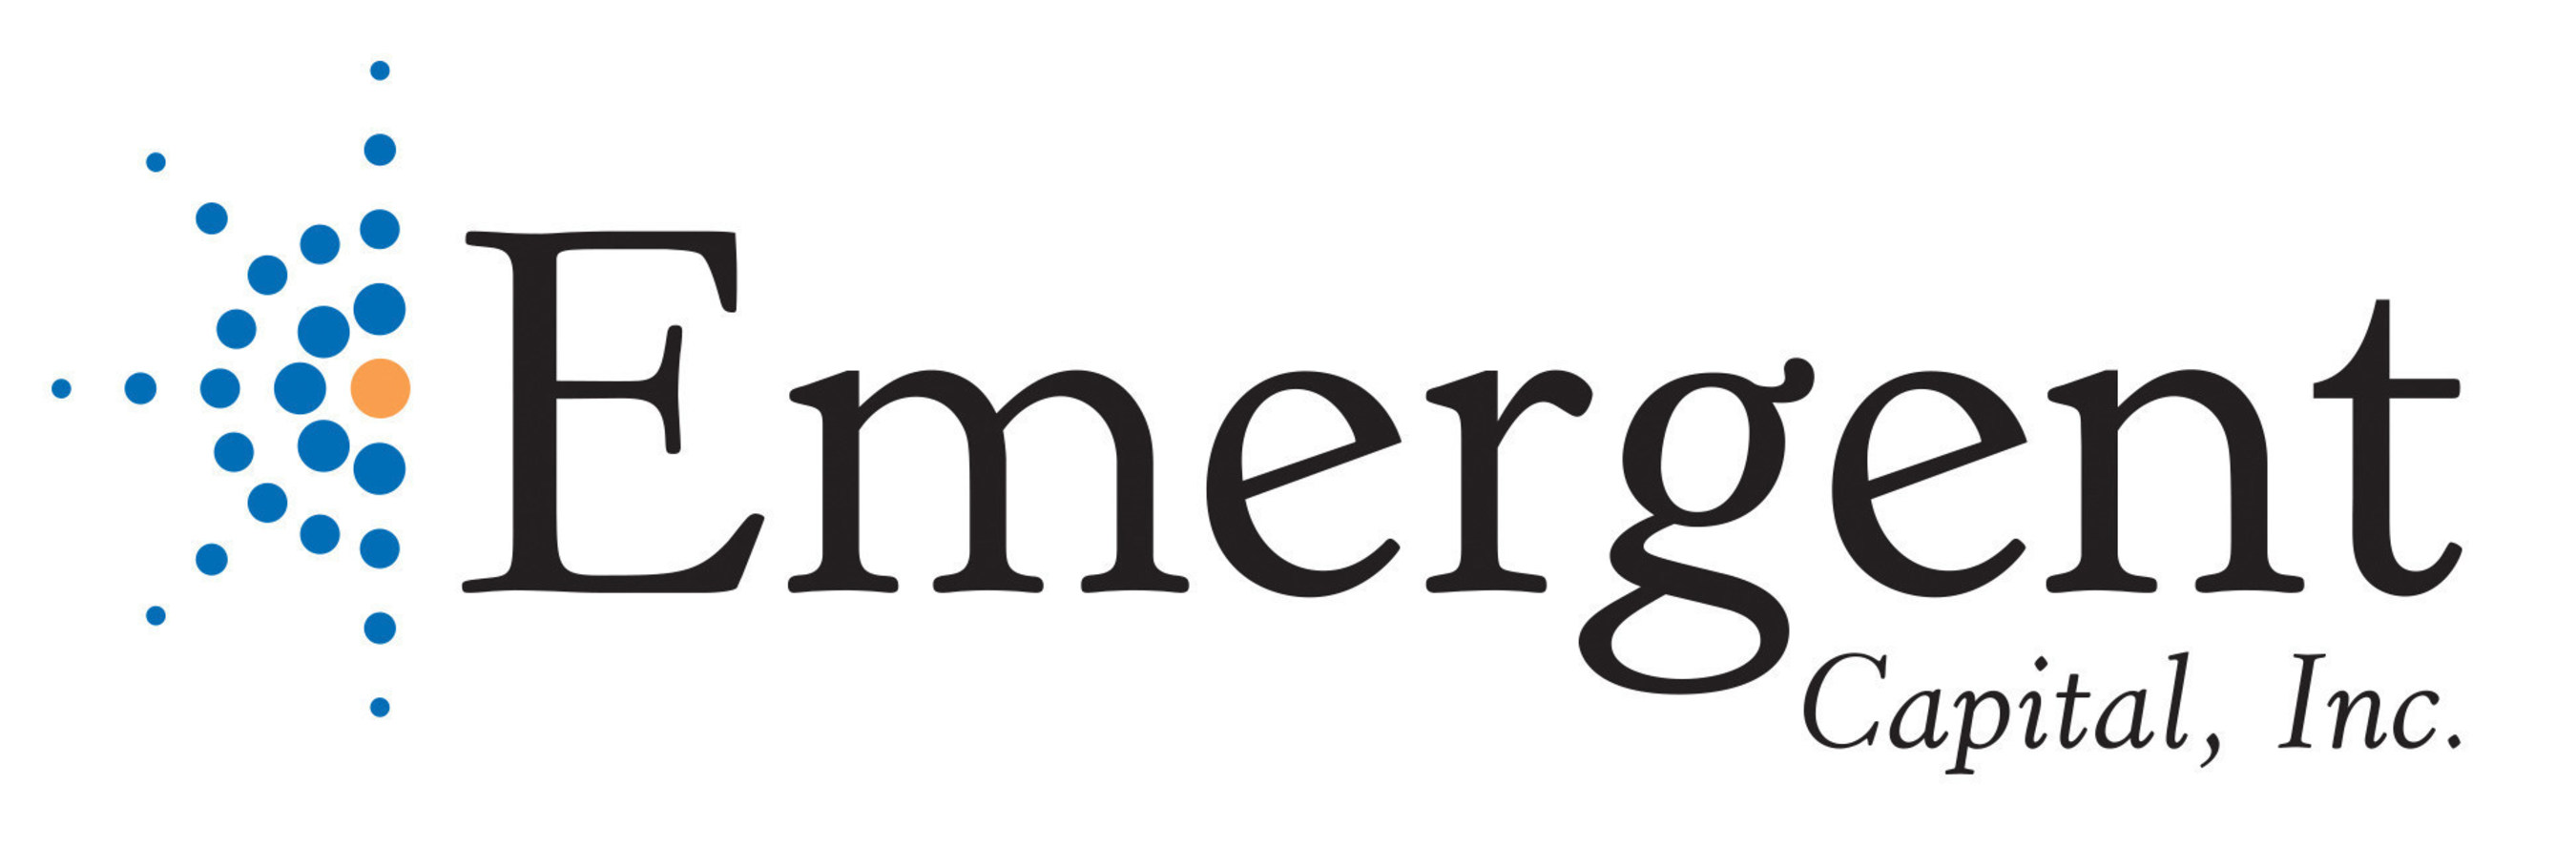 Emergent Capital, Inc. logo